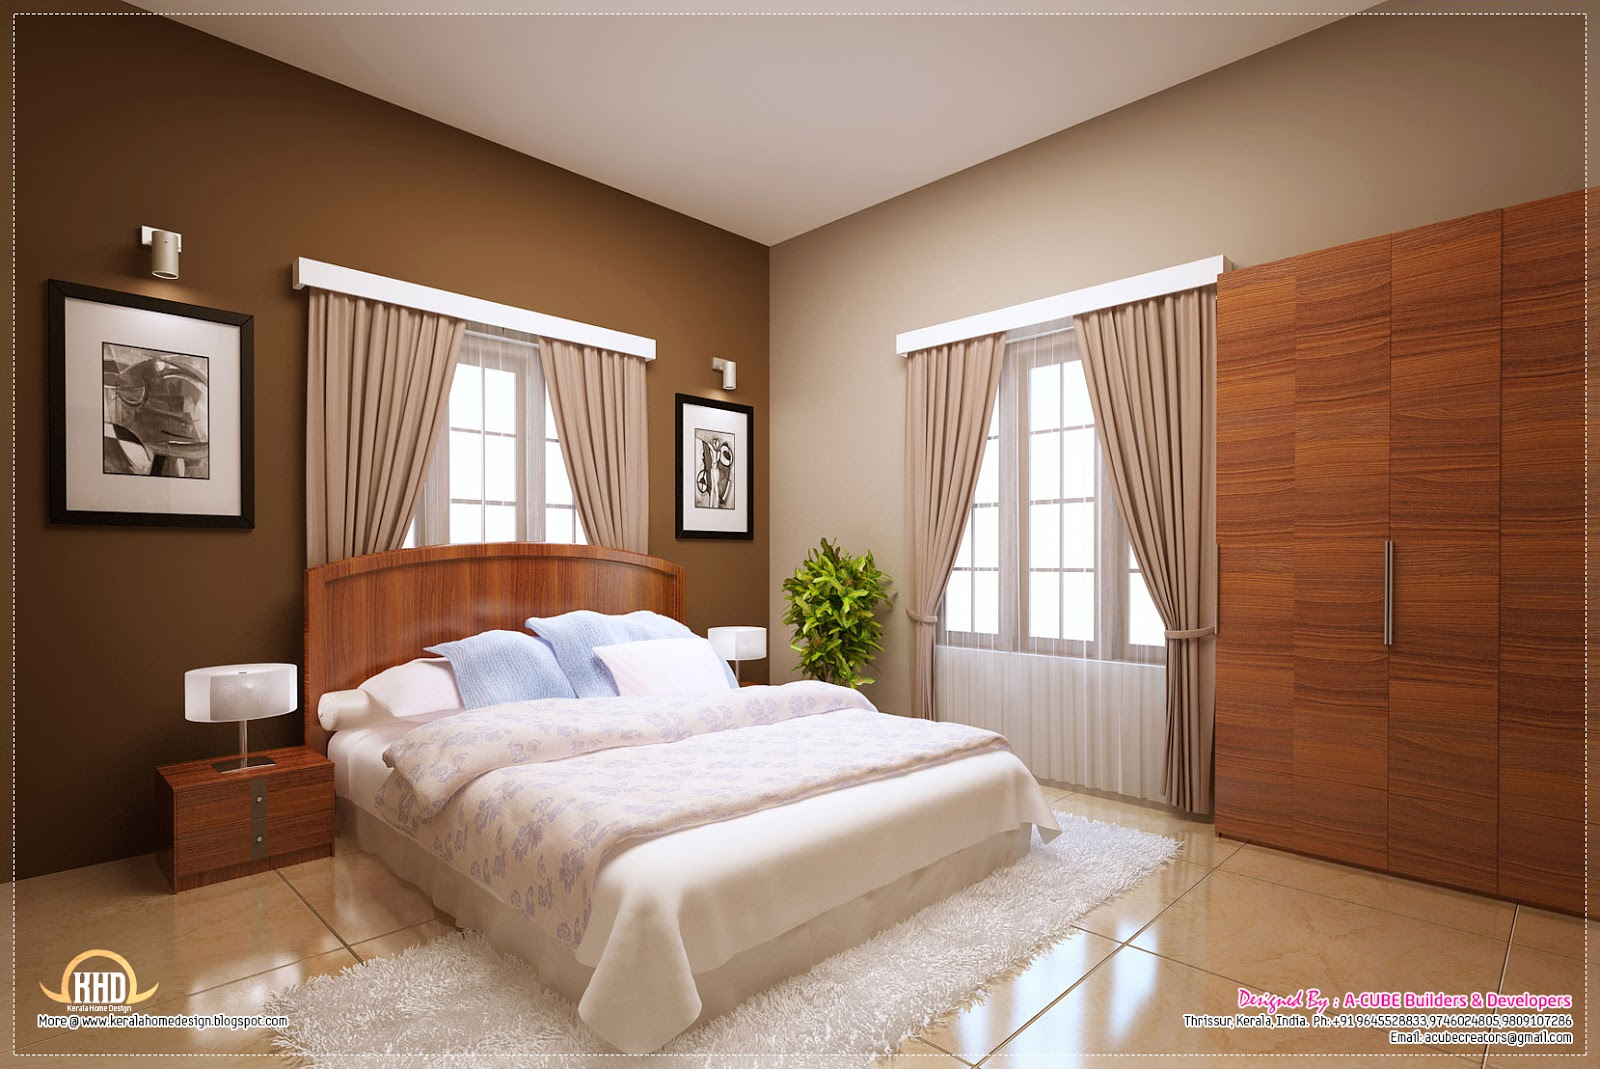 Awesome interior decoration ideas kerala home design and Home interior design bedroom